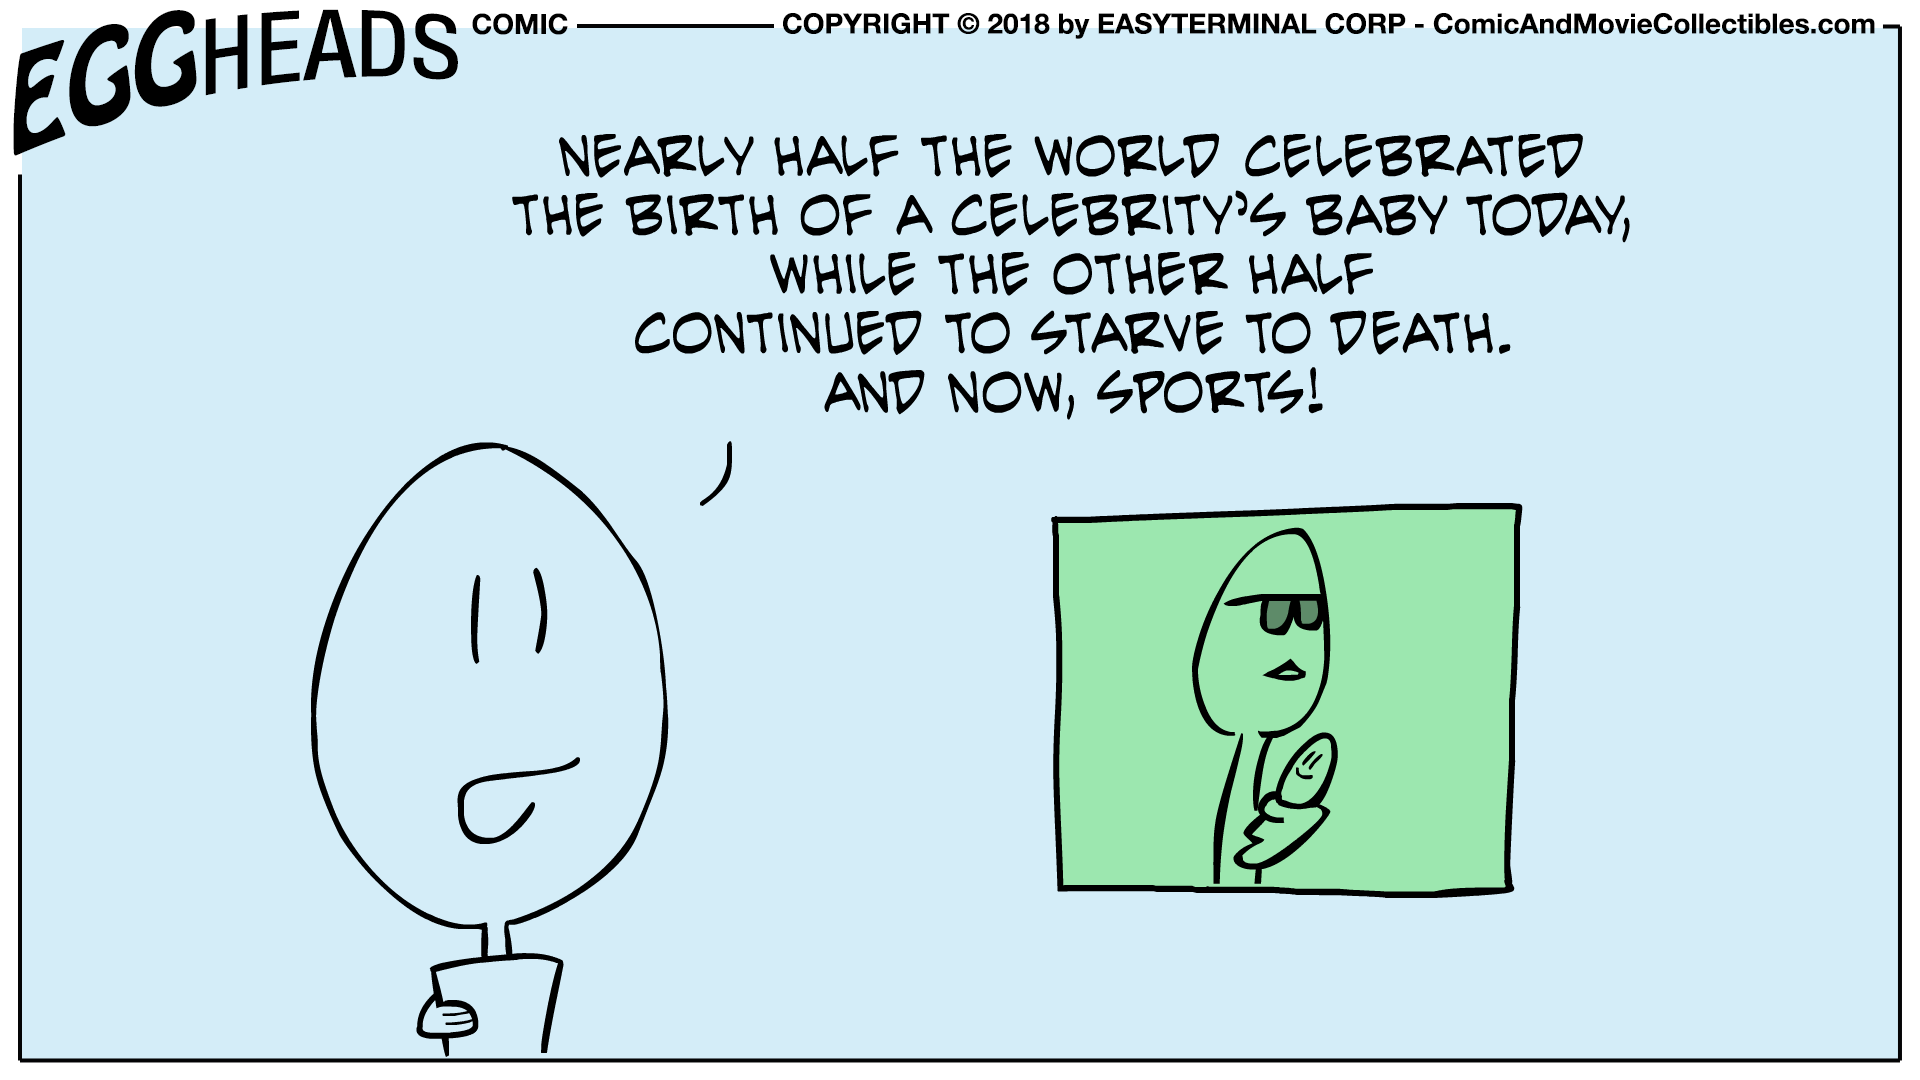 Webcomic Eggheads Comic Strip 022 Half the World